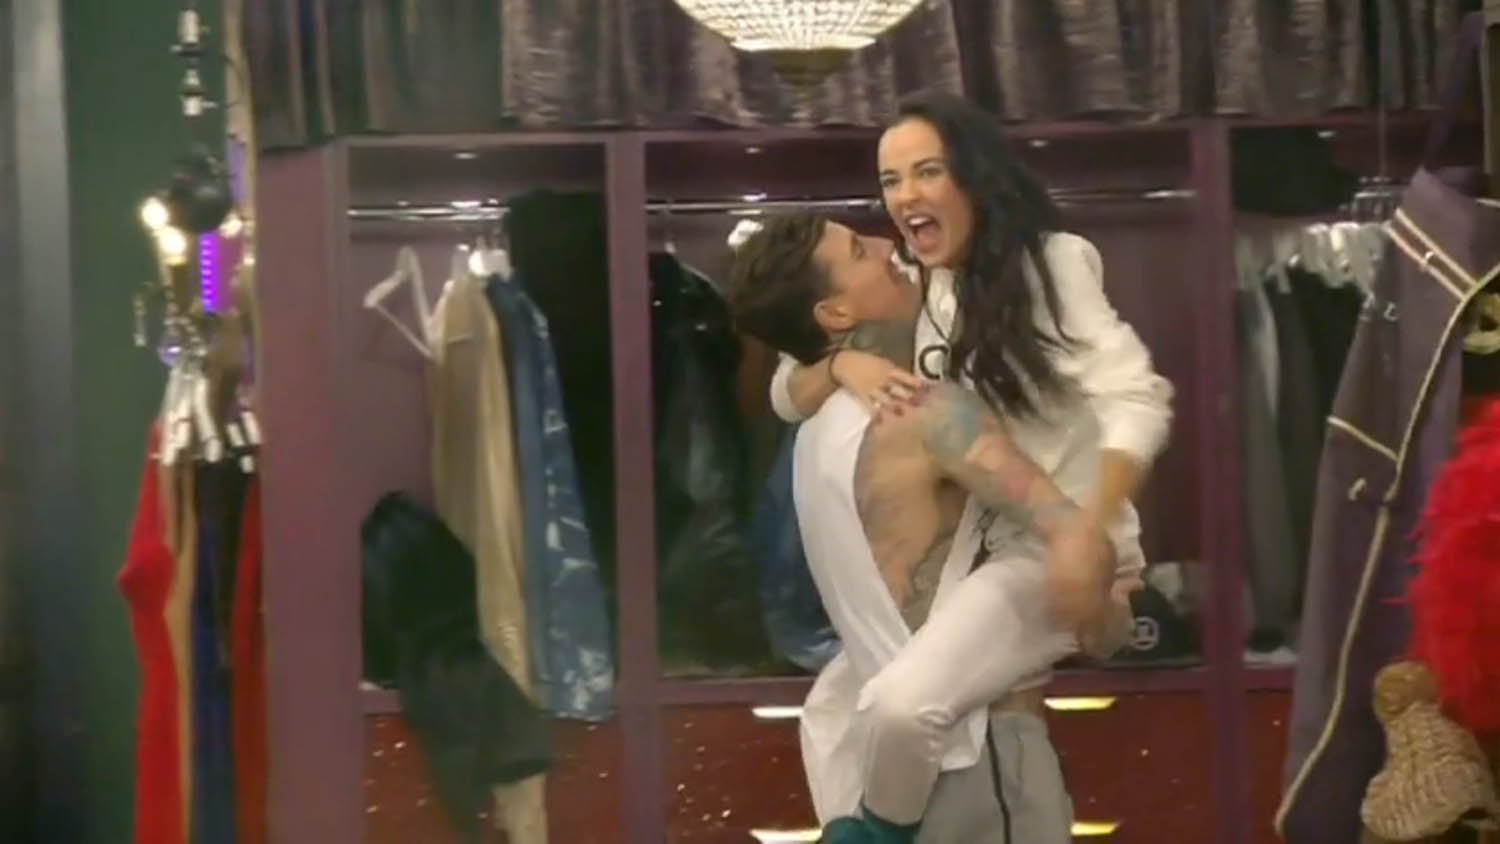 ` ****Ruckas Videograbs**** (01322) 861777 *IMPORTANT* Please credit Channel 5 for this picture. 28/01/16 Celebrity Big Brother DAY 24 SEEN HERE: Stephanie Davis and Jeremy McConnell continue to flirt, with Jeremy picking her up and getting in bed together, yesterday evening Grabs from overnight in the CBB house Office (UK) : 01322 861777 Mobile (UK) : 07742 164 106 **IMPORTANT - PLEASE READ** The video grabs supplied by Ruckas Pictures always remain the copyright of the programme makers, we provide a service to purely capture and supply the images to the client, securing the copyright of the images will always remain the responsibility of the publisher at all times. Standard terms, conditions & minimum fees apply to our videograbs unless varied by agreement prior to publication.